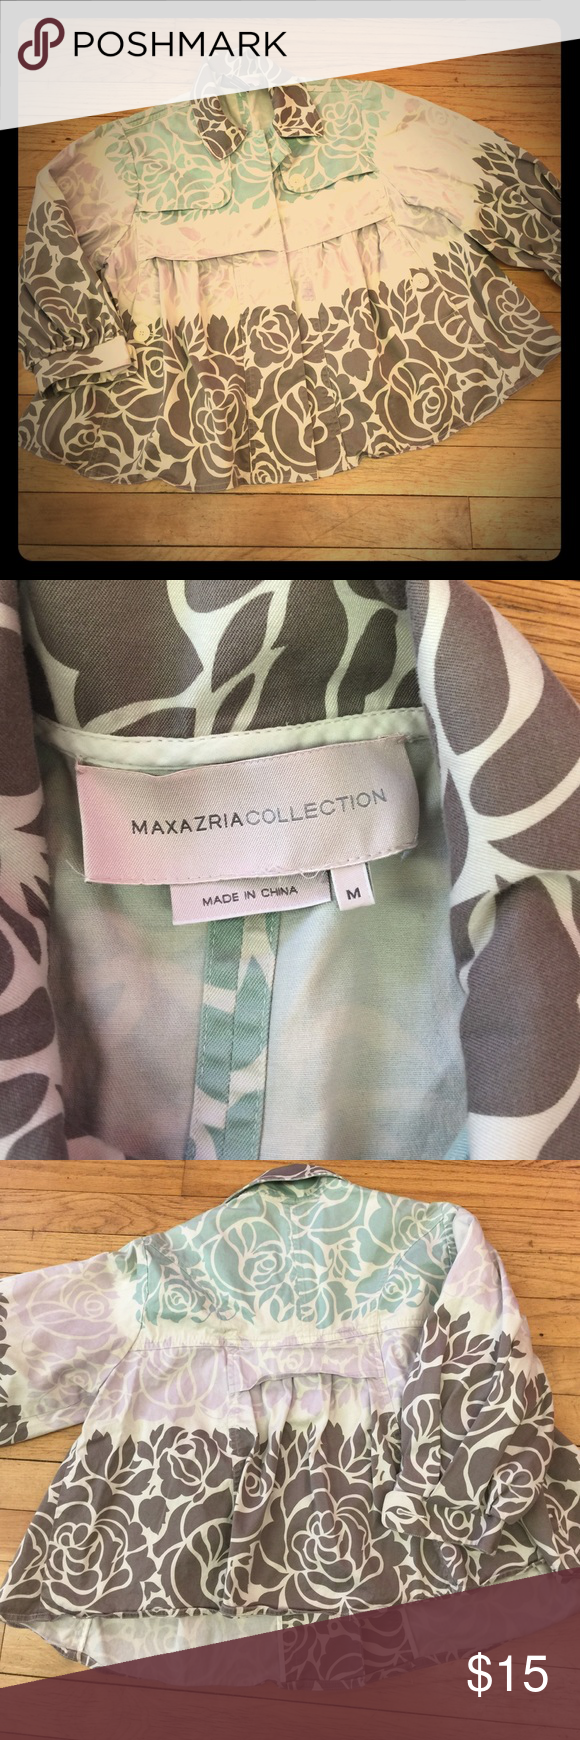 listing! Maxazria Collection swing jacket, M Gorgeous Maxazria Collection swing jacket! Size Medium. Colors go from the brown collar to a soft moss green to a lavender and back to brown against a khaki background. Lightweight denim material, 97% cotton, 3% spandex. All items from a clean, smoke-free home. Feel free to ask any questions or make an offer! BCBGMaxAzria Jackets & Coats